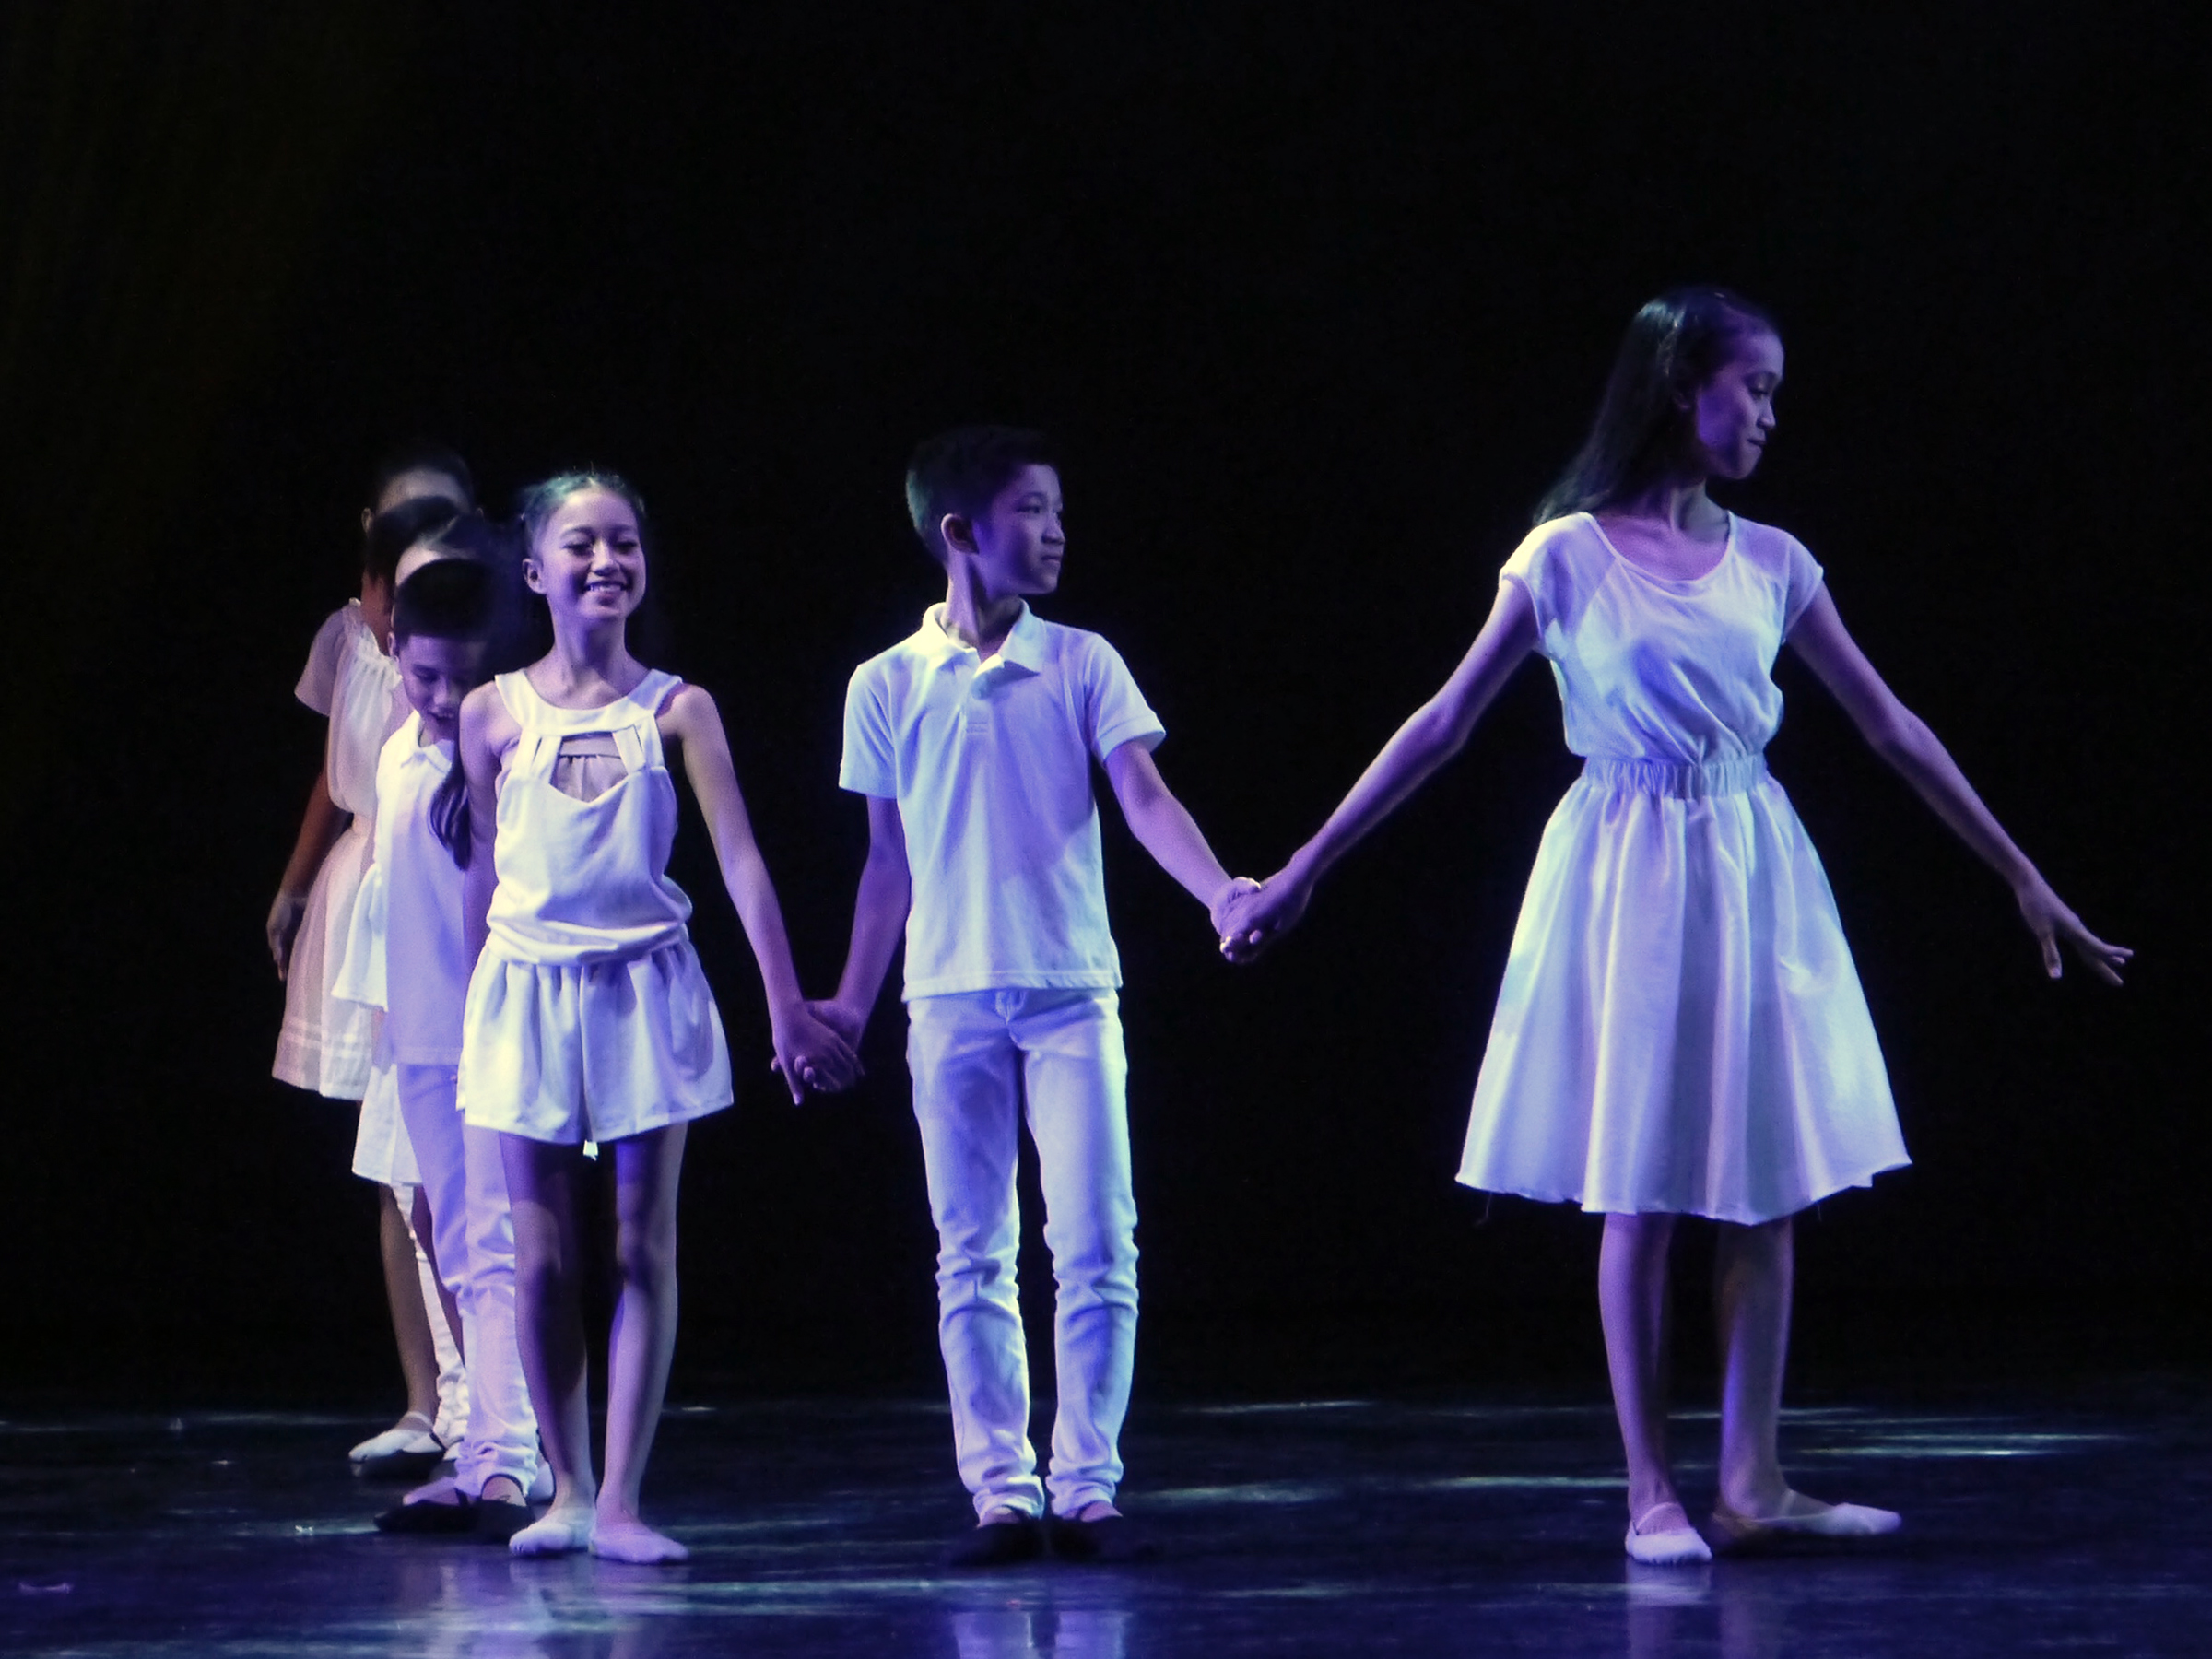 Gian (left, foreground) and other Project Ballet Futures scholars danced in    Ballet & Ballads   , in a number sung by pop singer Christian Bautista. Photo by Giselle P. Kasilag